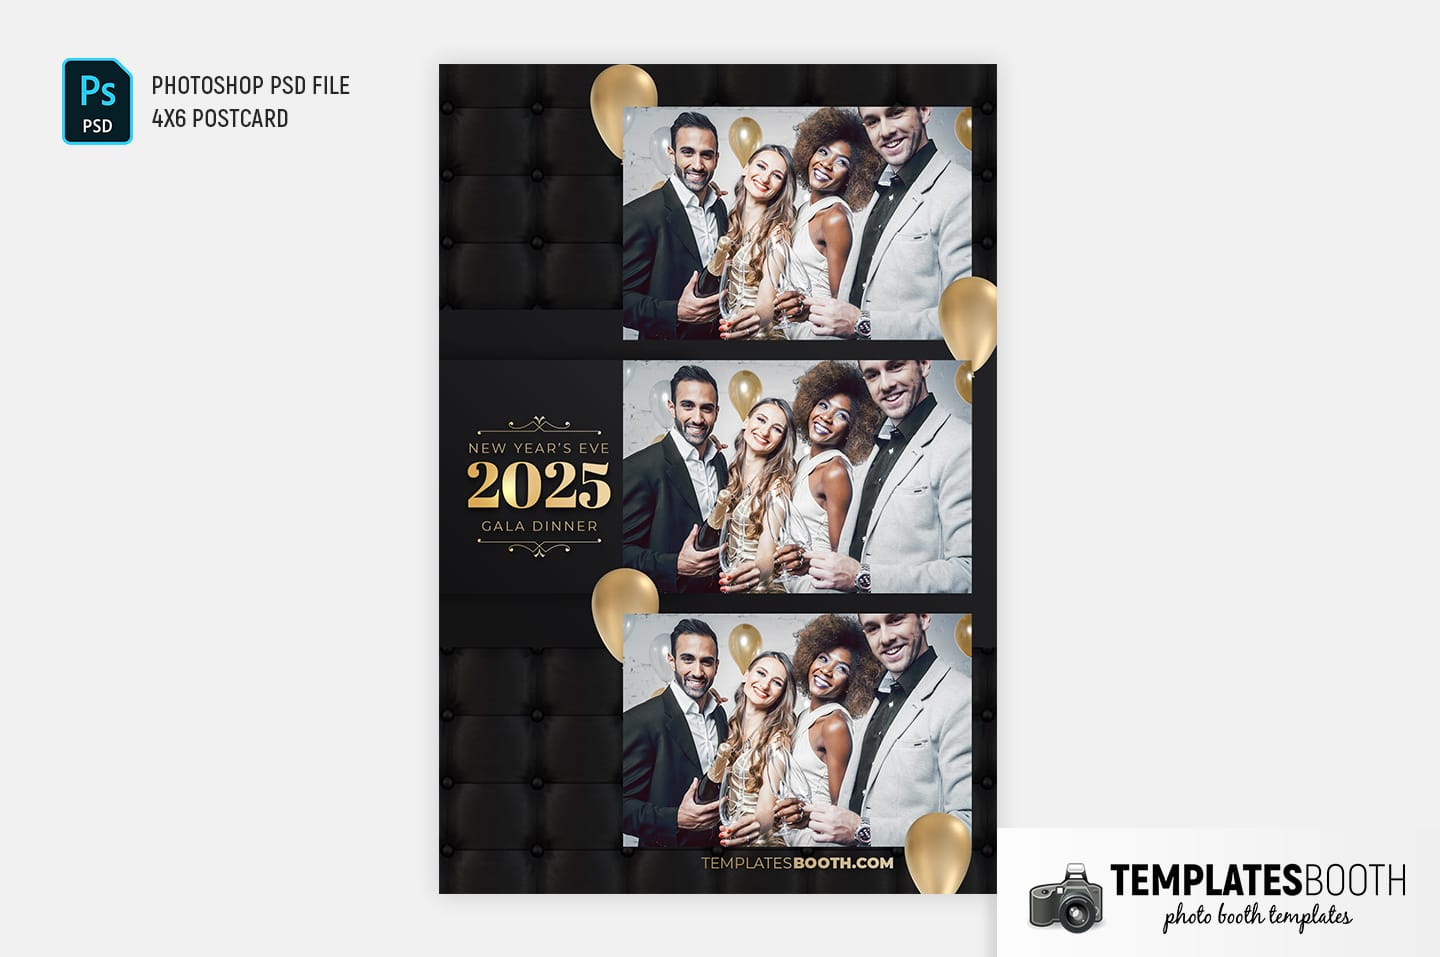 New Year's Eve Party Photo Booth Template (4x6 postcard)